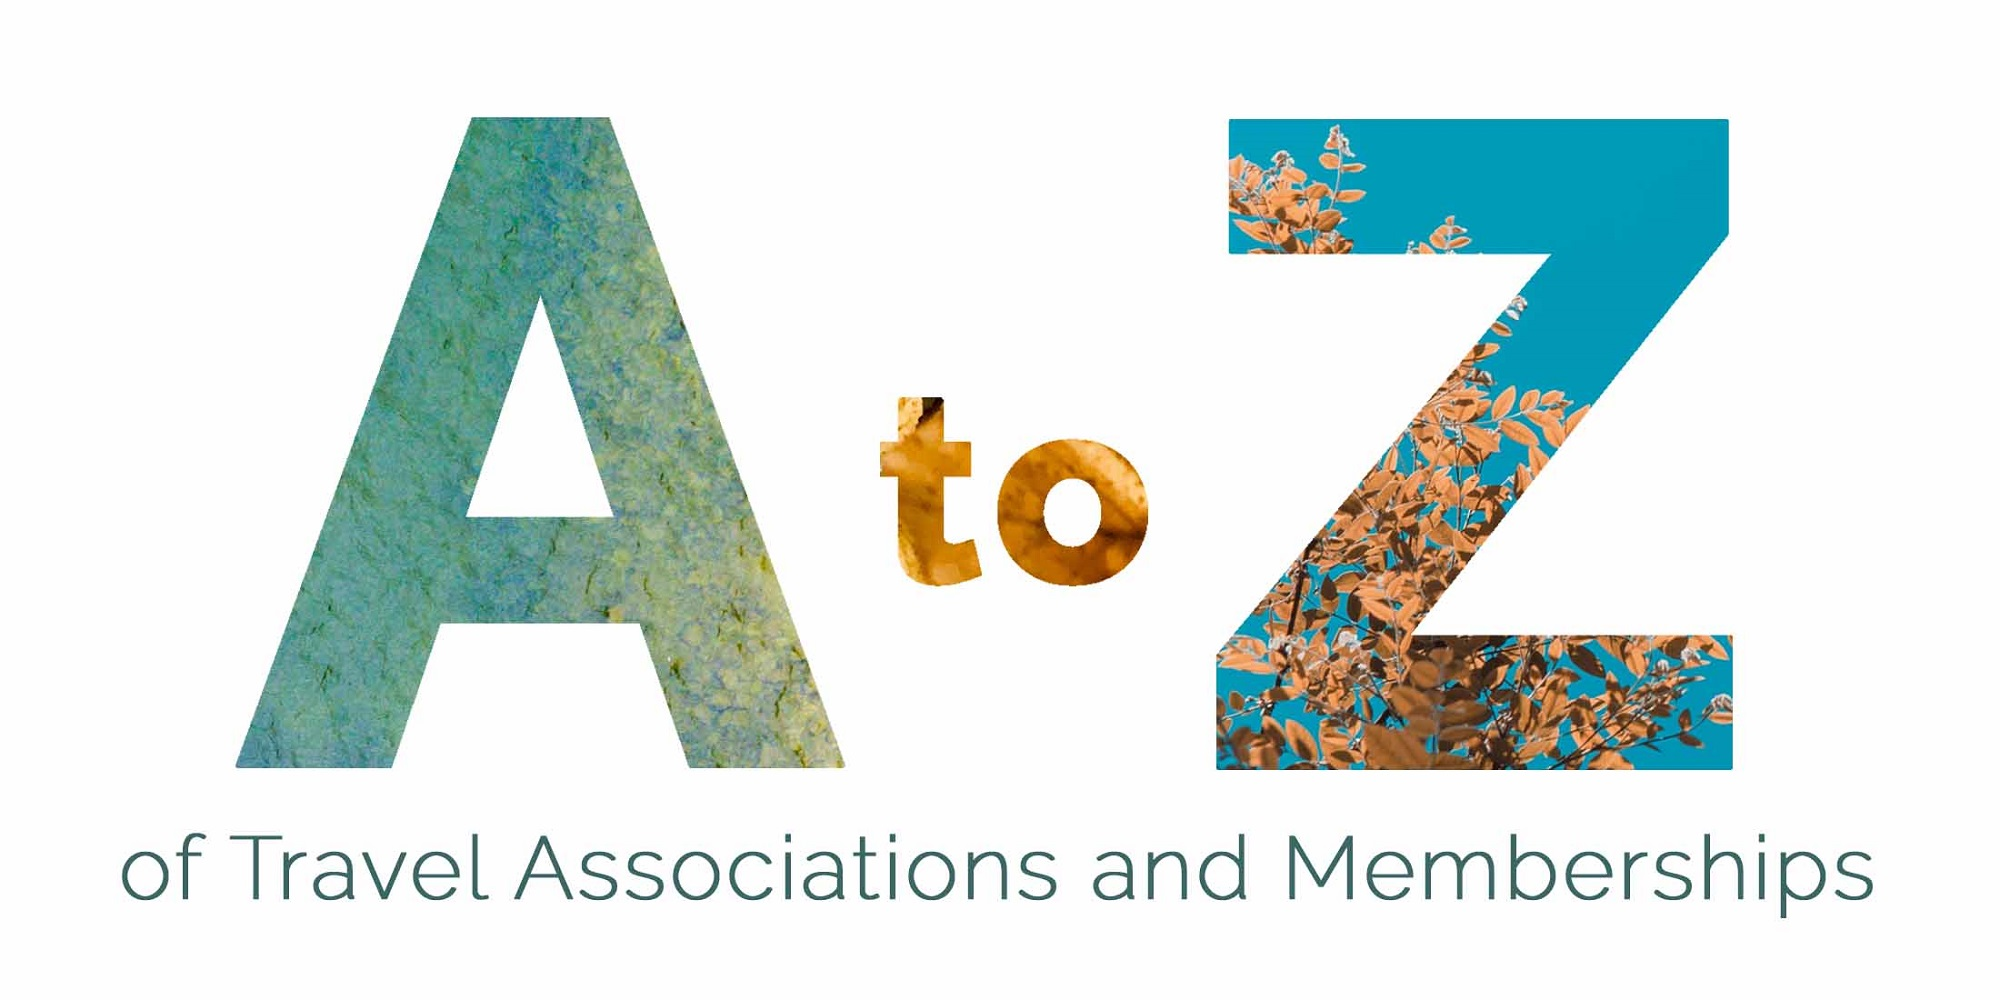 List of Travel membership and associations